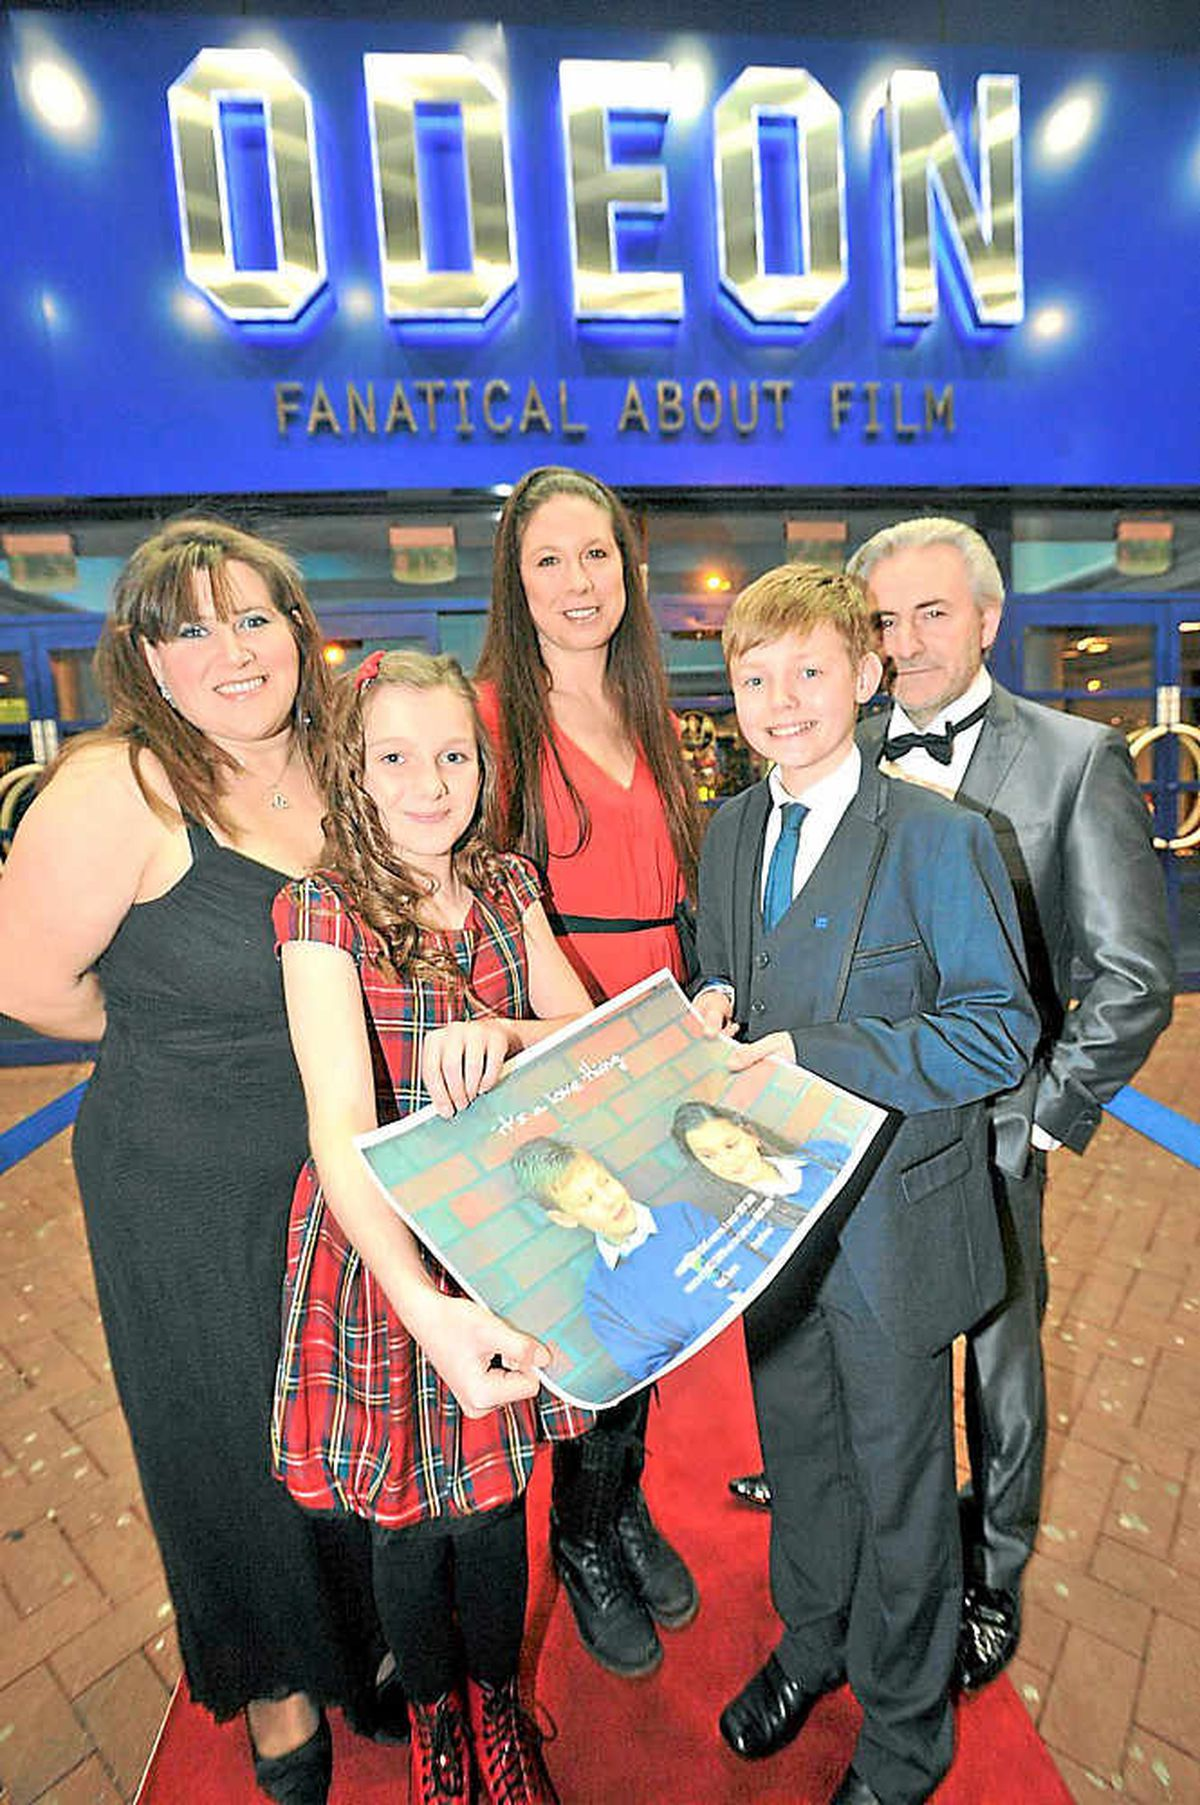 Members of the cast and crew from It's A Love Thing at its premiere at the Odeon in Telford. Claire Hickman, Hollie Thoupos, Sarah Whitehouse, Peter Overal, Andy Dodd